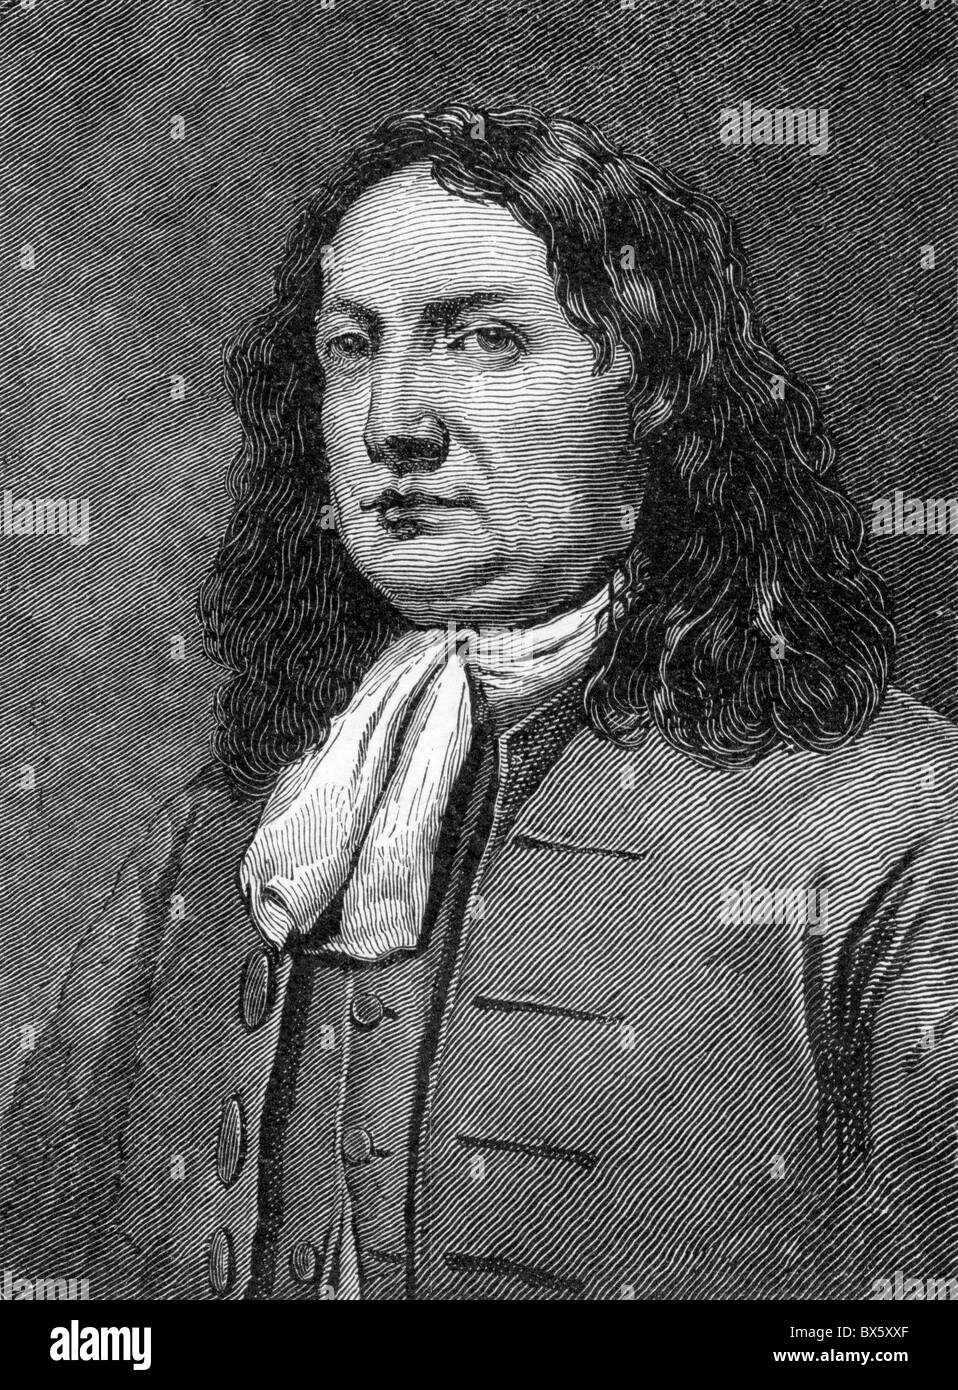 William Penn, founder of Pennsylvania in the Americas; Black and White Illustration; Stock Photo